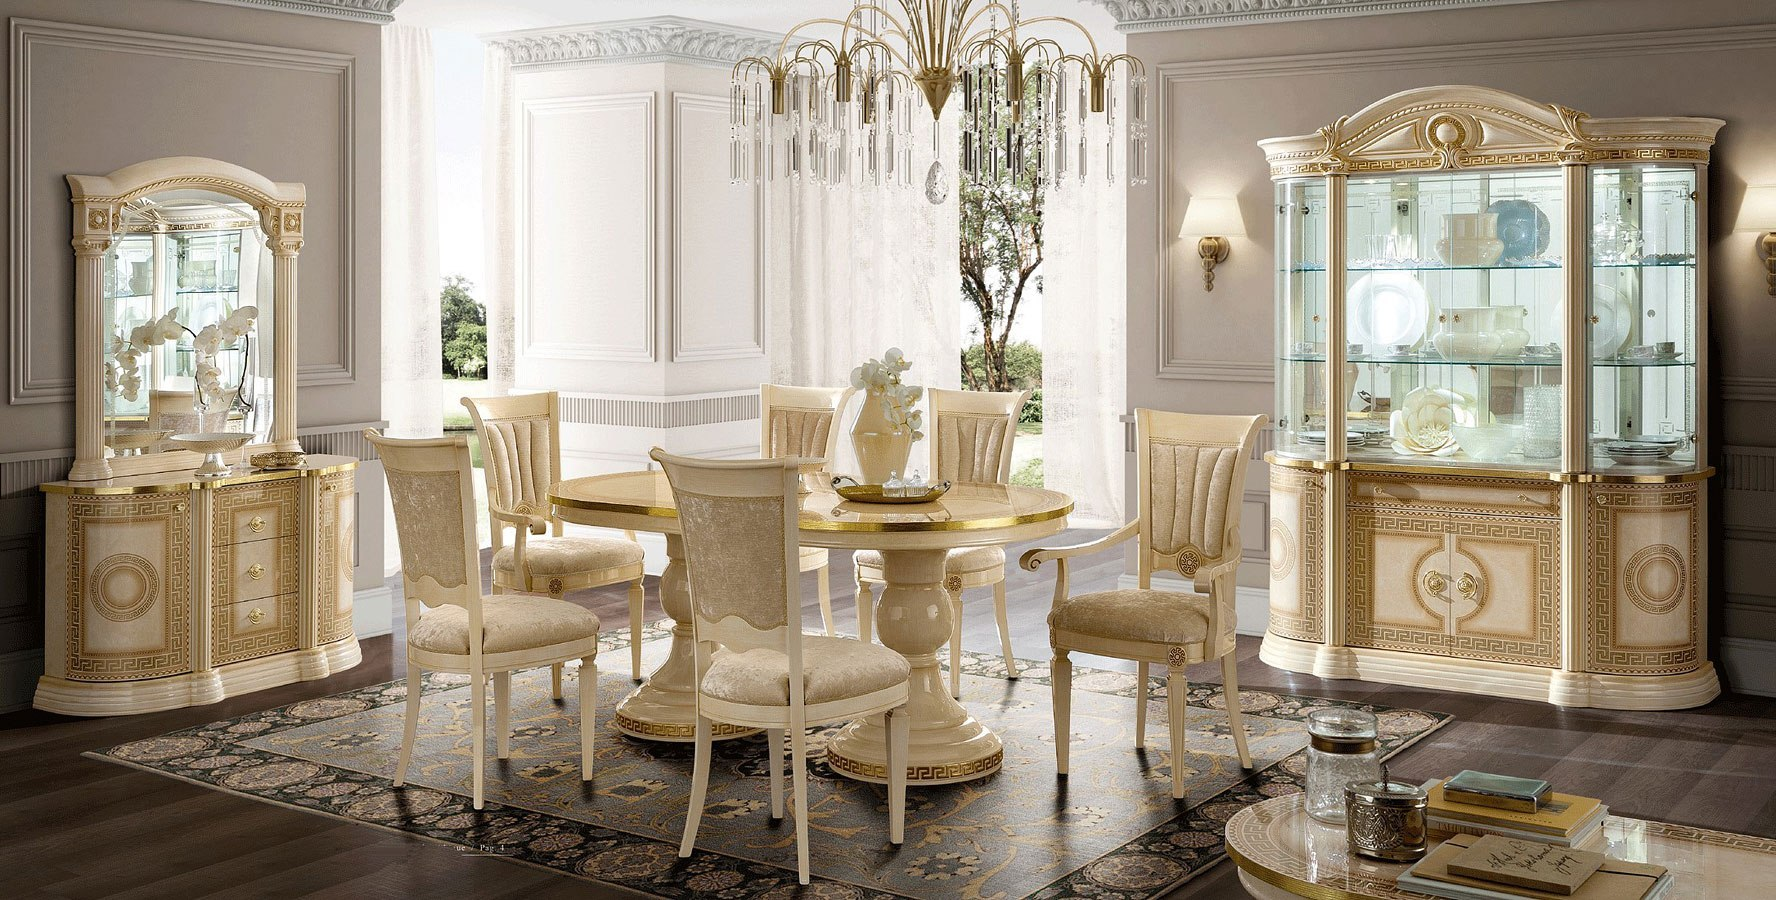 Aida Dining Room Set (Ivory and Gold)